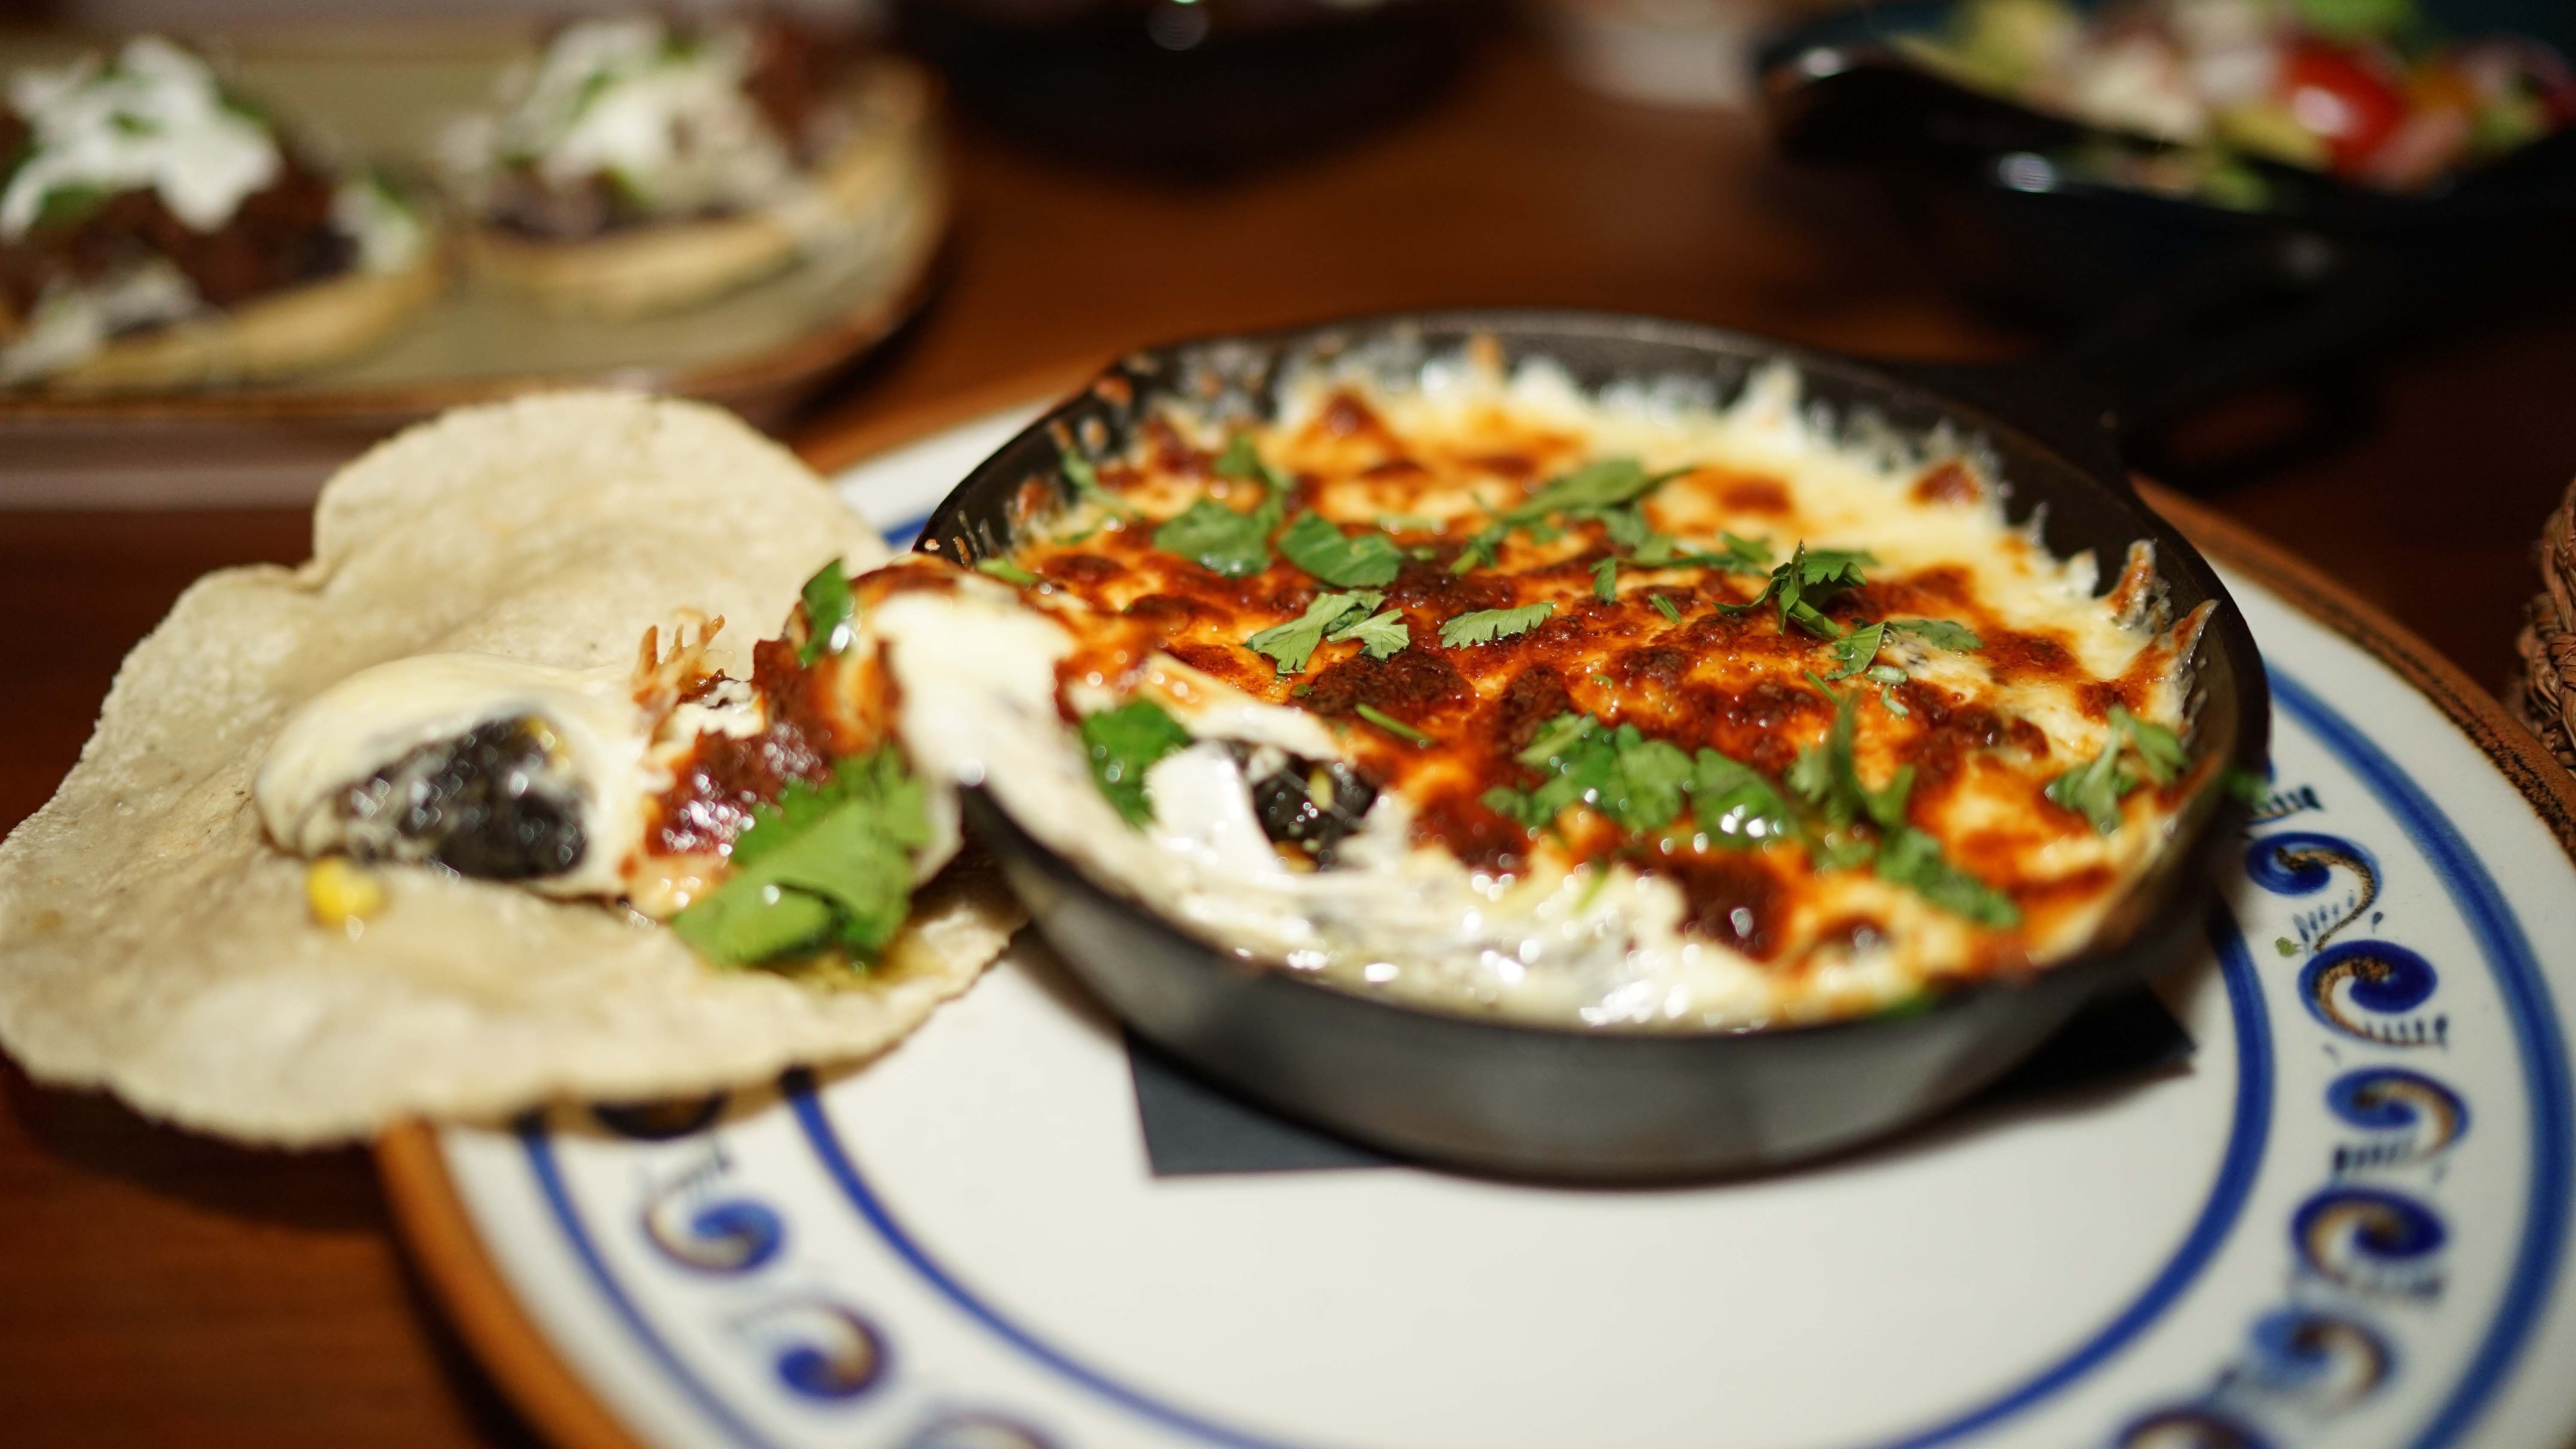 Rosa Mexicano melted cheese